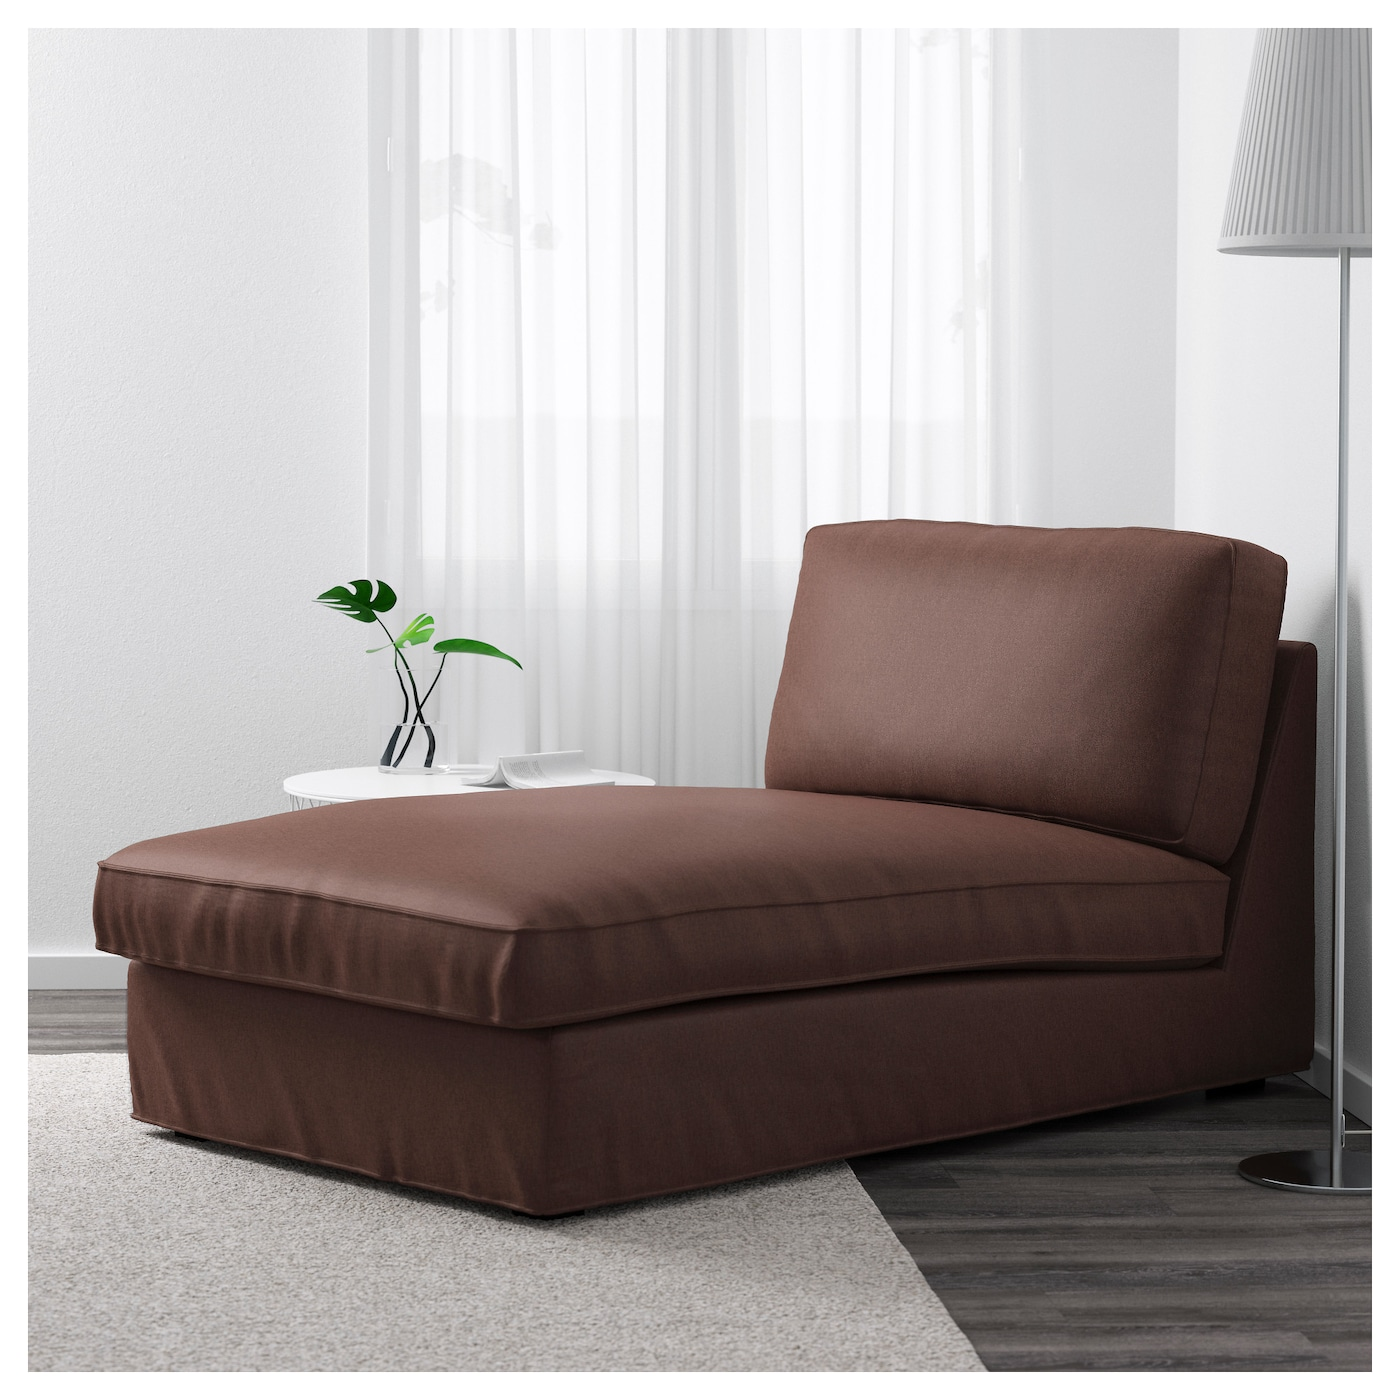 Kivik chaise longue borred dark brown ikea for Brown chaise longue